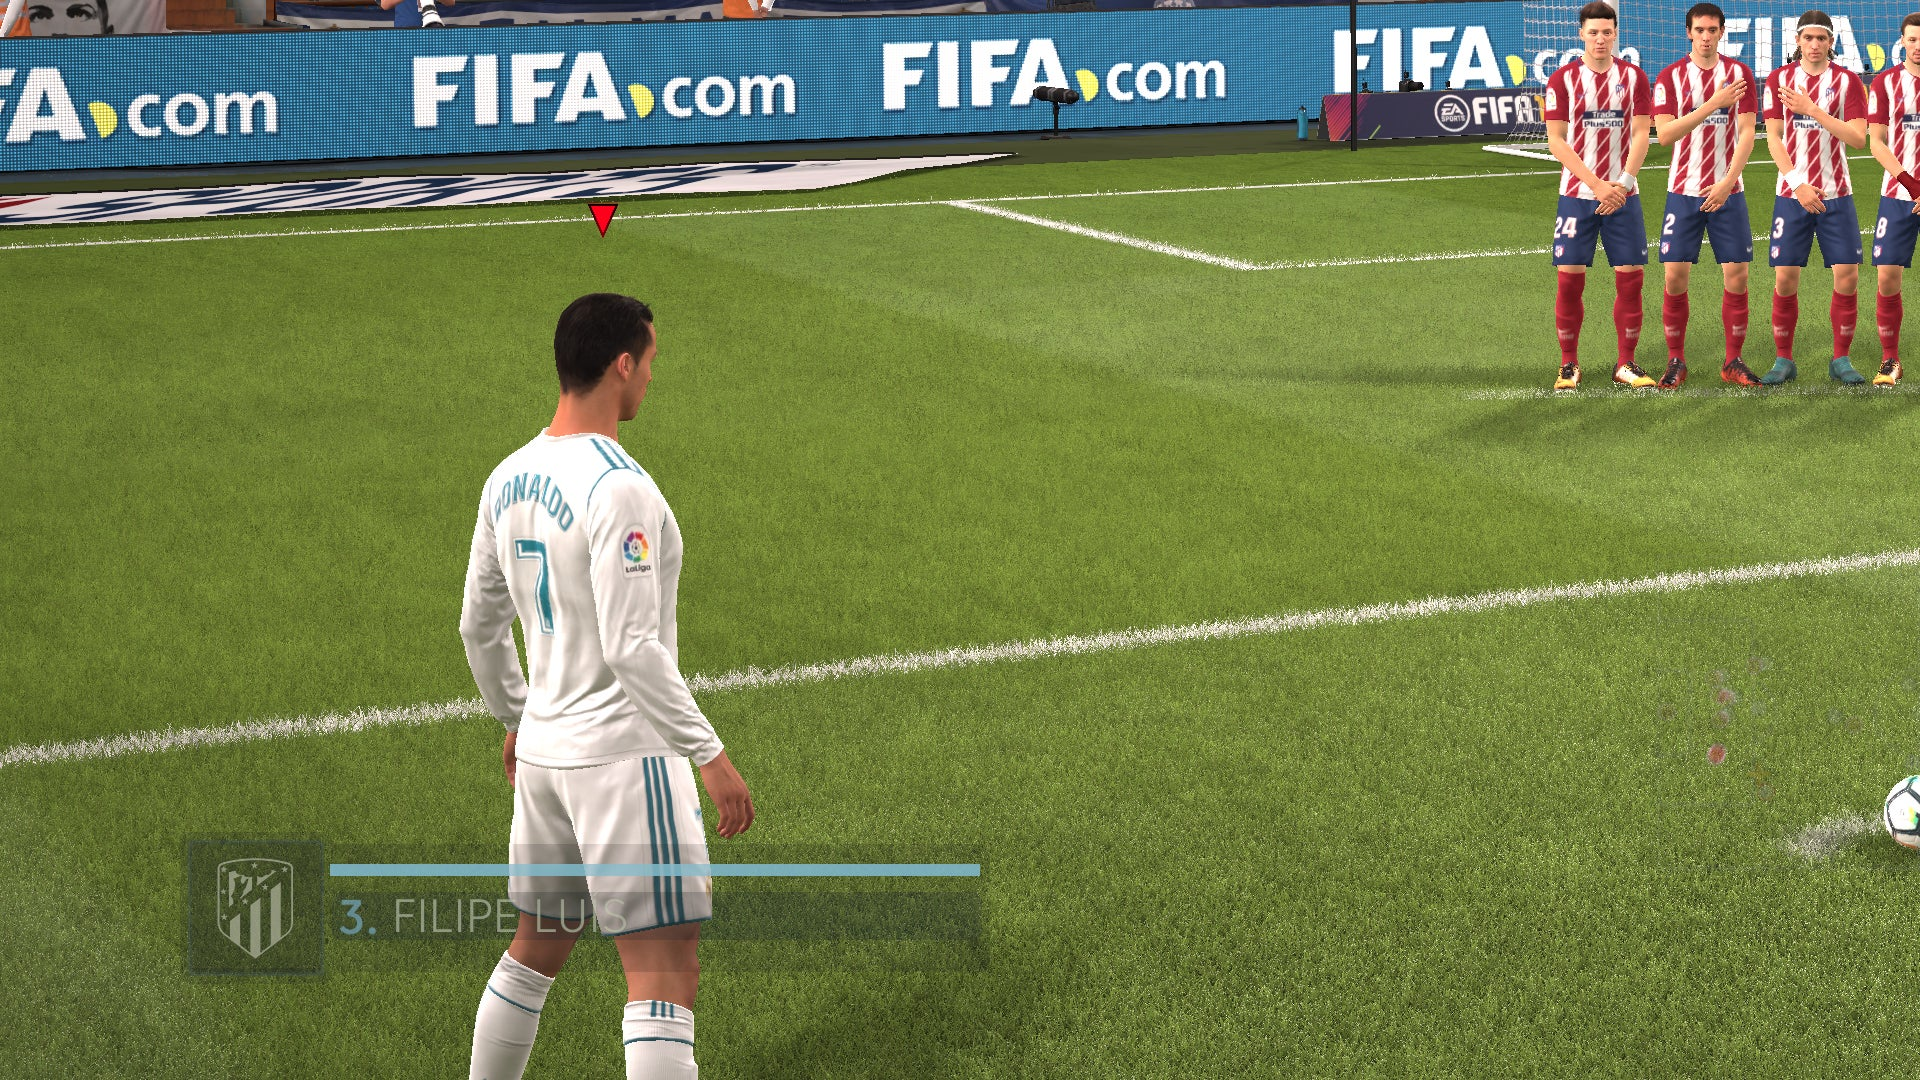 The Upper Screen Is A Portion Of Full 4K Screenshot While Lower From HDR In Top Image Lighting On Mr Ronaldos Kit More